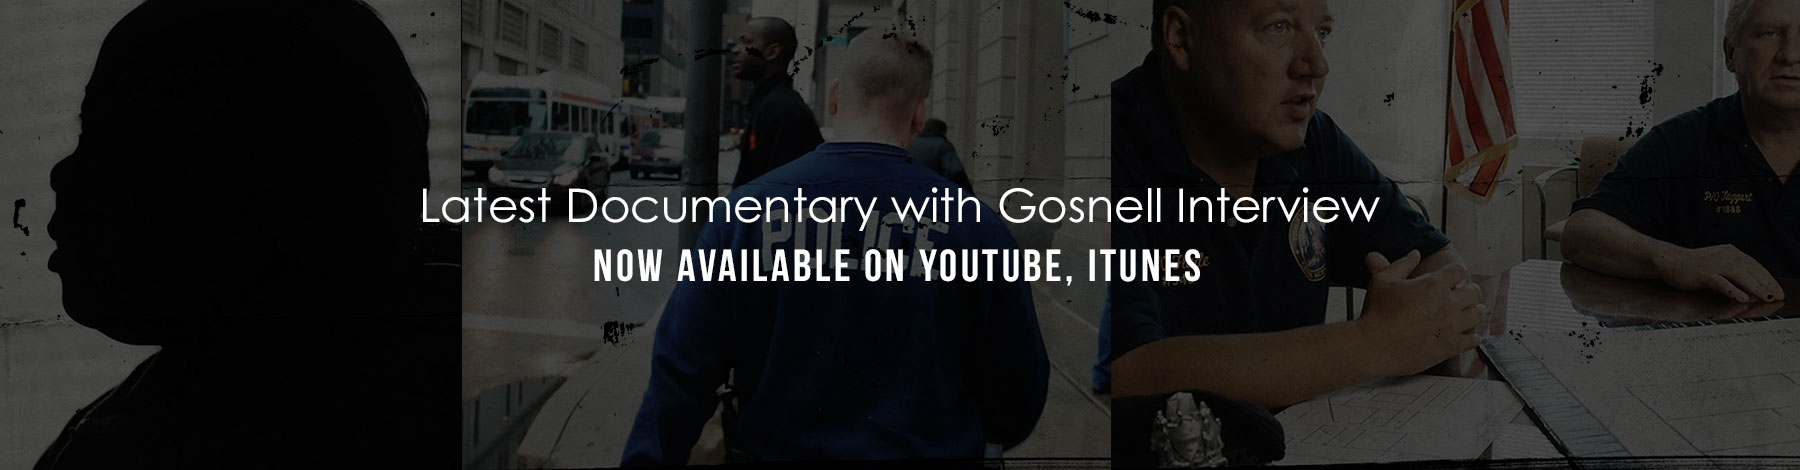 Latest Documentary with Gosnell Interview Now Available